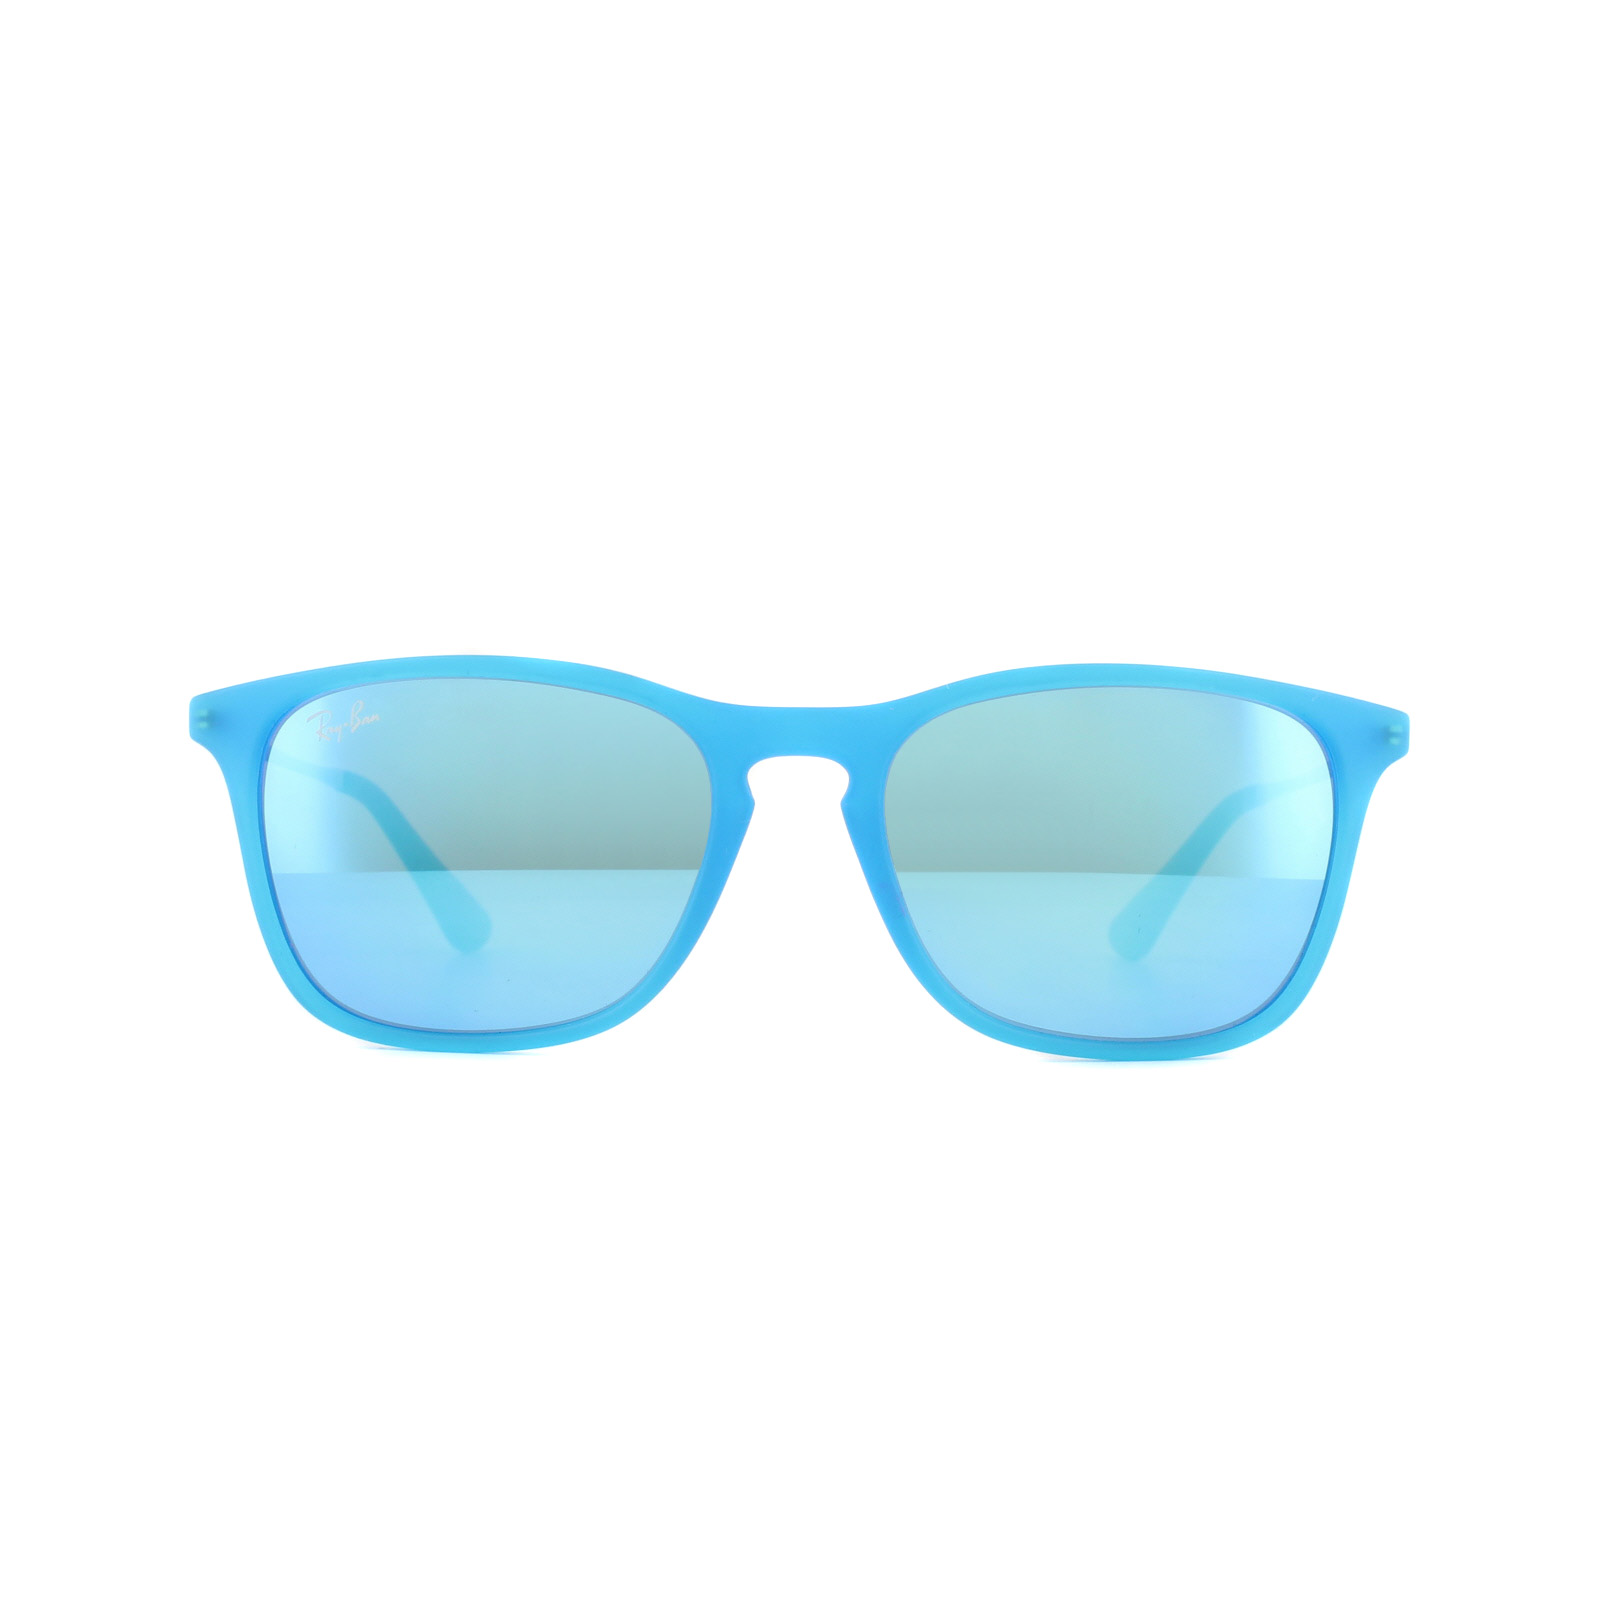 b2dbee40c6a62 Sentinel Ray-Ban Junior Sunglasses Chris 9061 701155 Azure Transparent  Rubber Blue Mirror